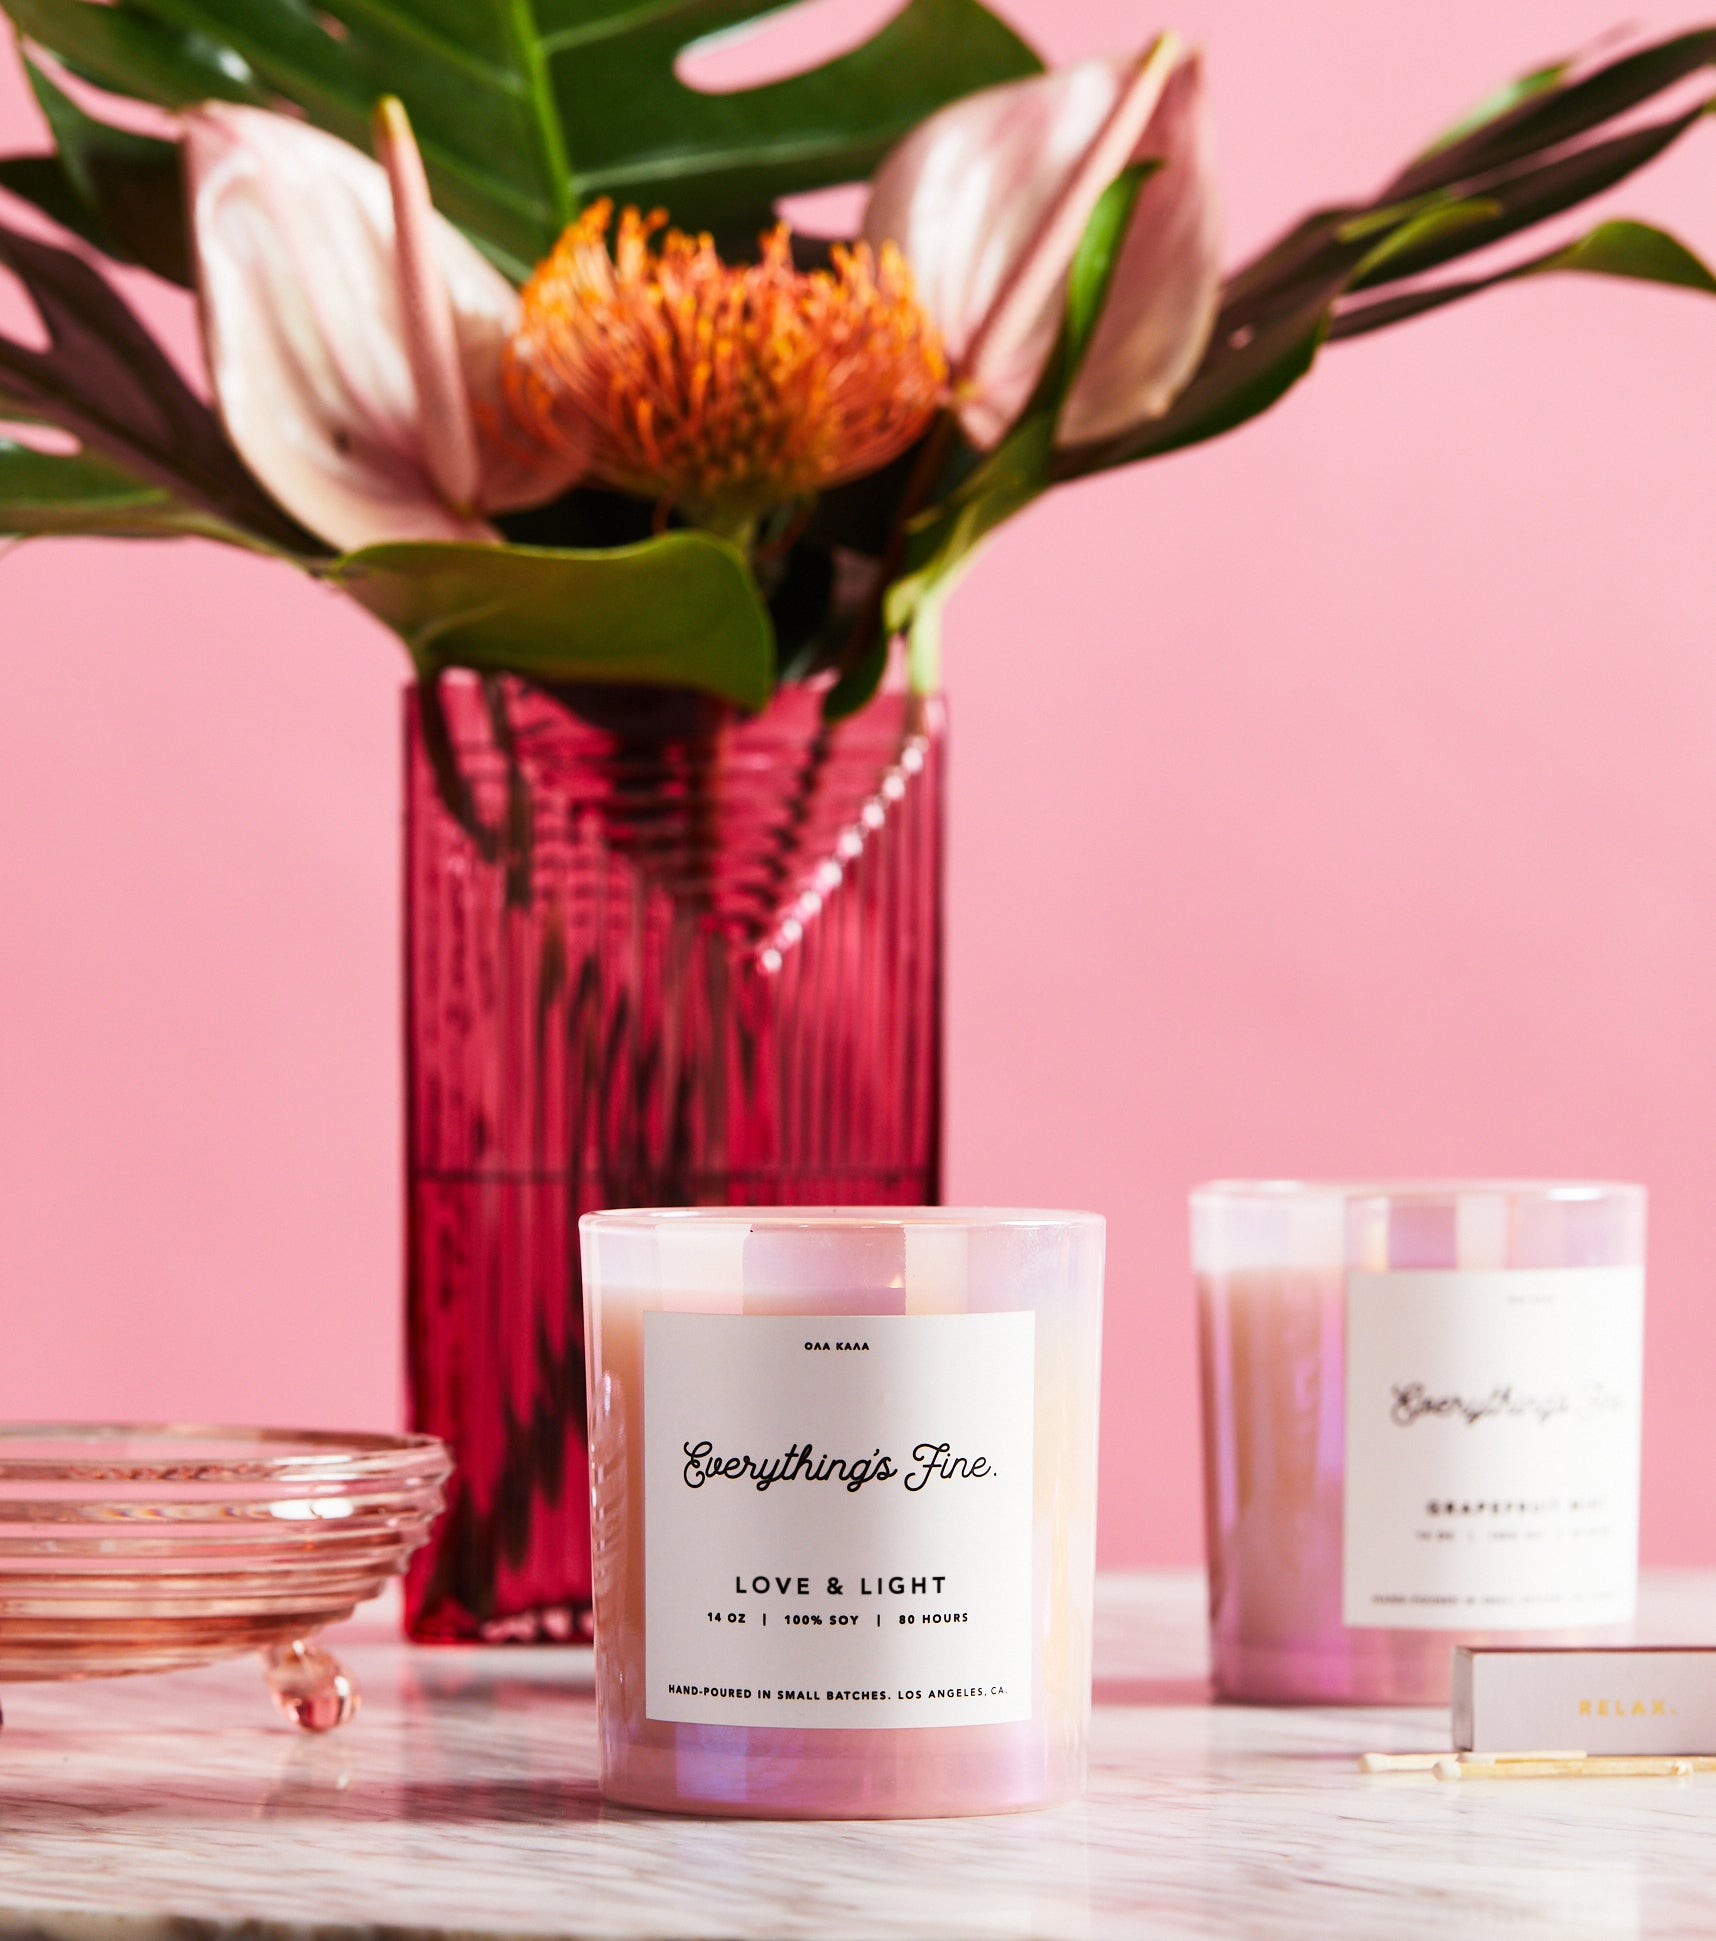 100% soy wax, hand-poured in ultra small batches in Los Angeles, CA. Made with a lead-free cotton wick and premium fragrance and essential oils for a clean burn. Bergamot, Mandarin, Freesia, Jasmine, Rose, Musk